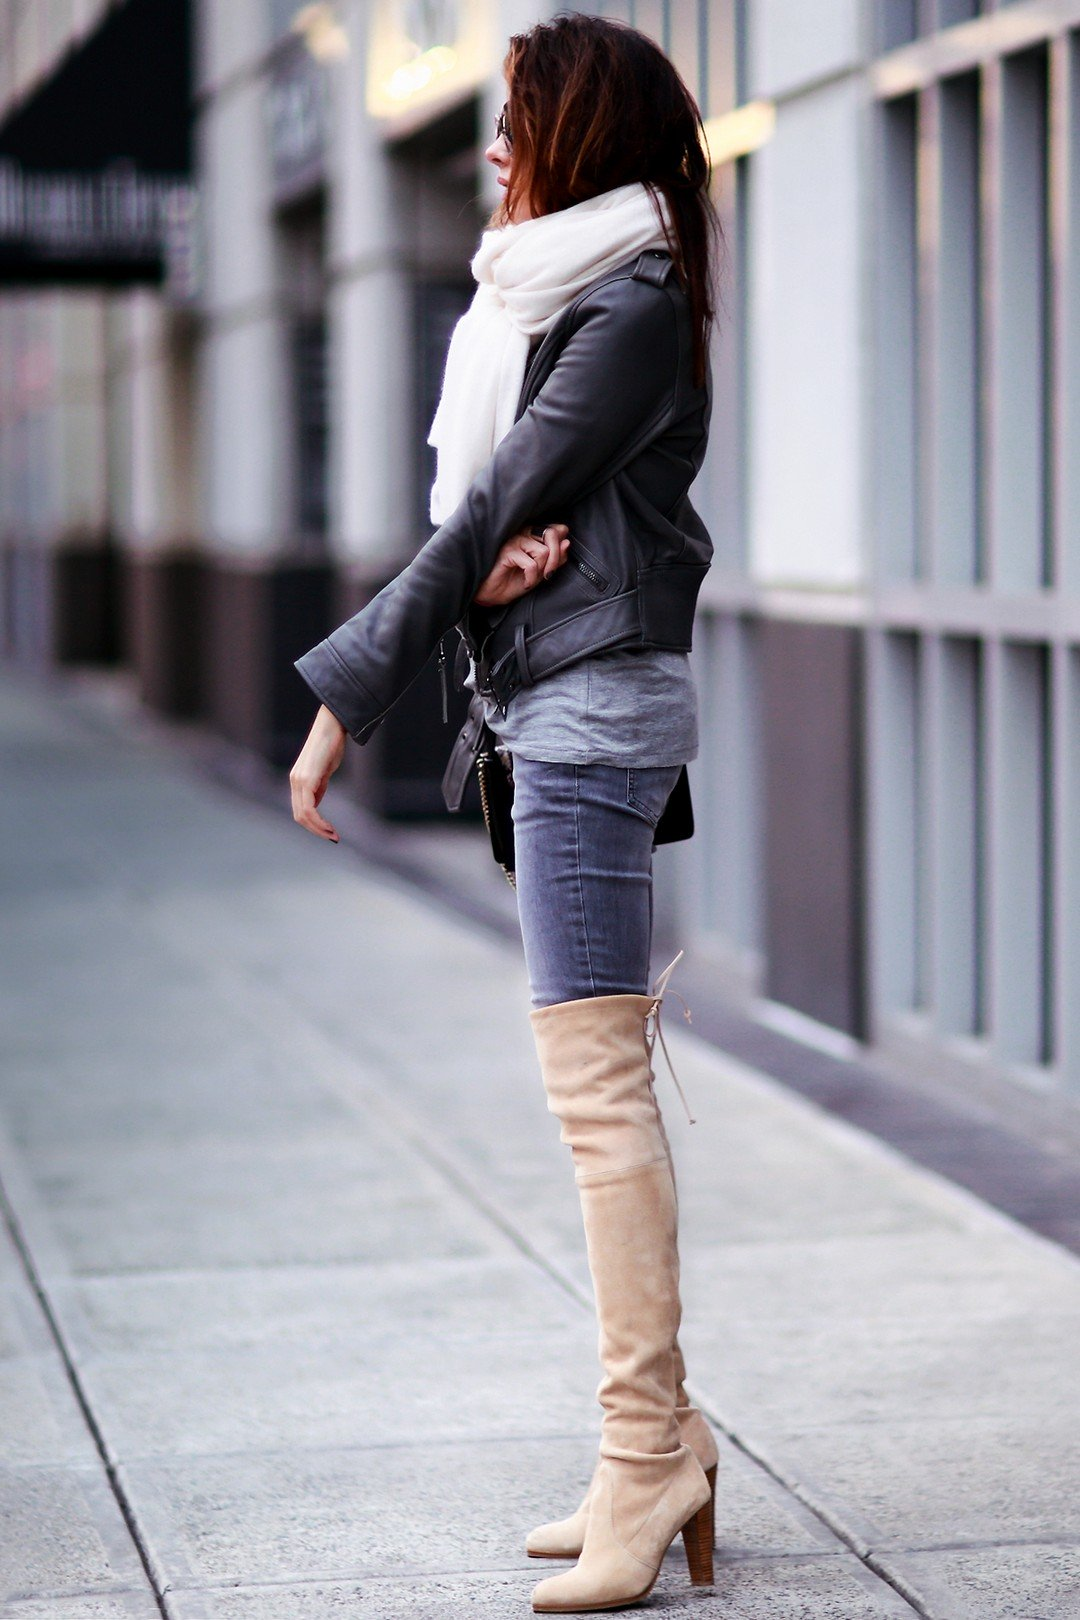 Erica Hoida demonstrates the versatility of thigh high boots, wearing a pair of pale blush coloured boots with denim jeans and a cropped leather jacket. Black is absolutely not the only appropriate colour; don't be afraid to try tinted boots! Jacket: Linea Pelle, Shirt: Tibi, Jeans: Aninie Bing, Shoes: Stuart Weitzman, Bag: Chloe, Scarf: White + Warren.